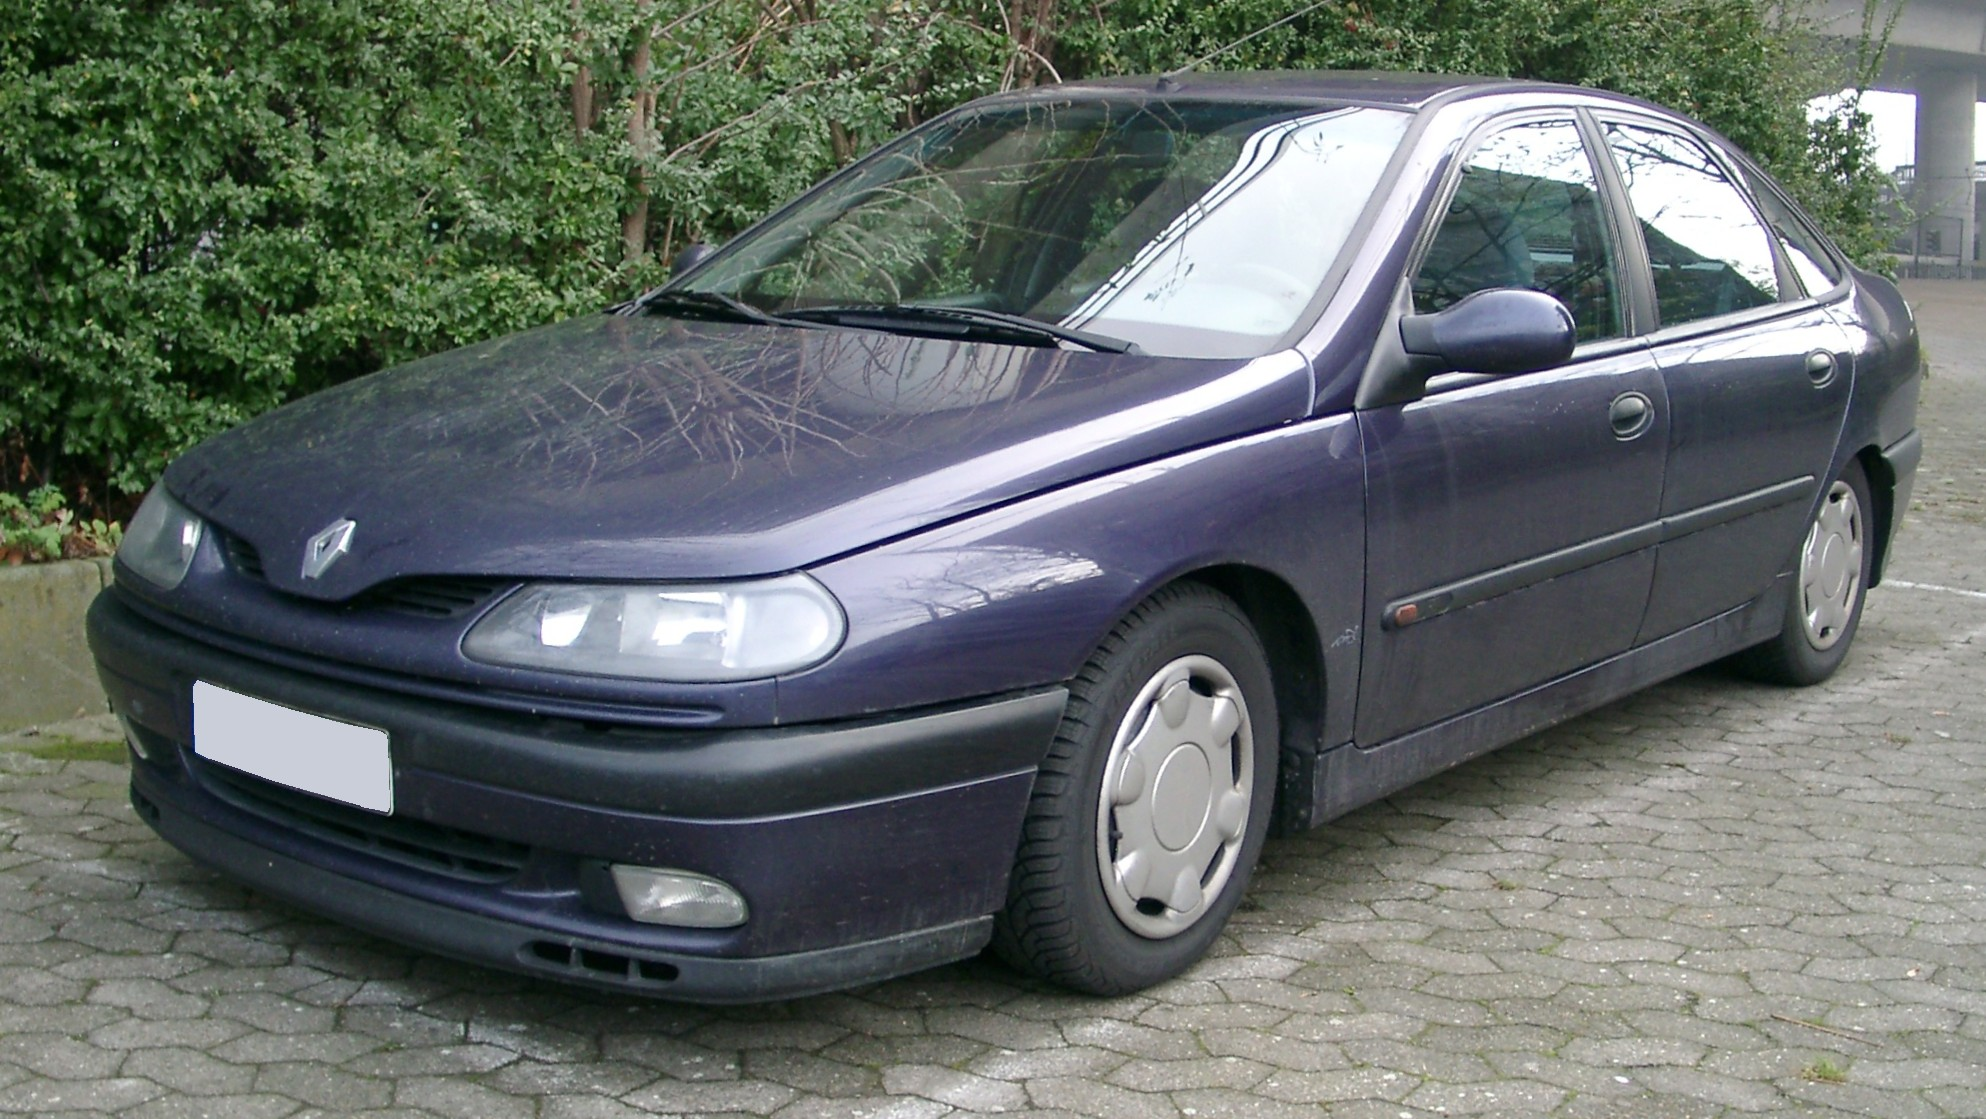 https://upload.wikimedia.org/wikipedia/commons/4/47/Renault_Laguna_front_20071129.jpg